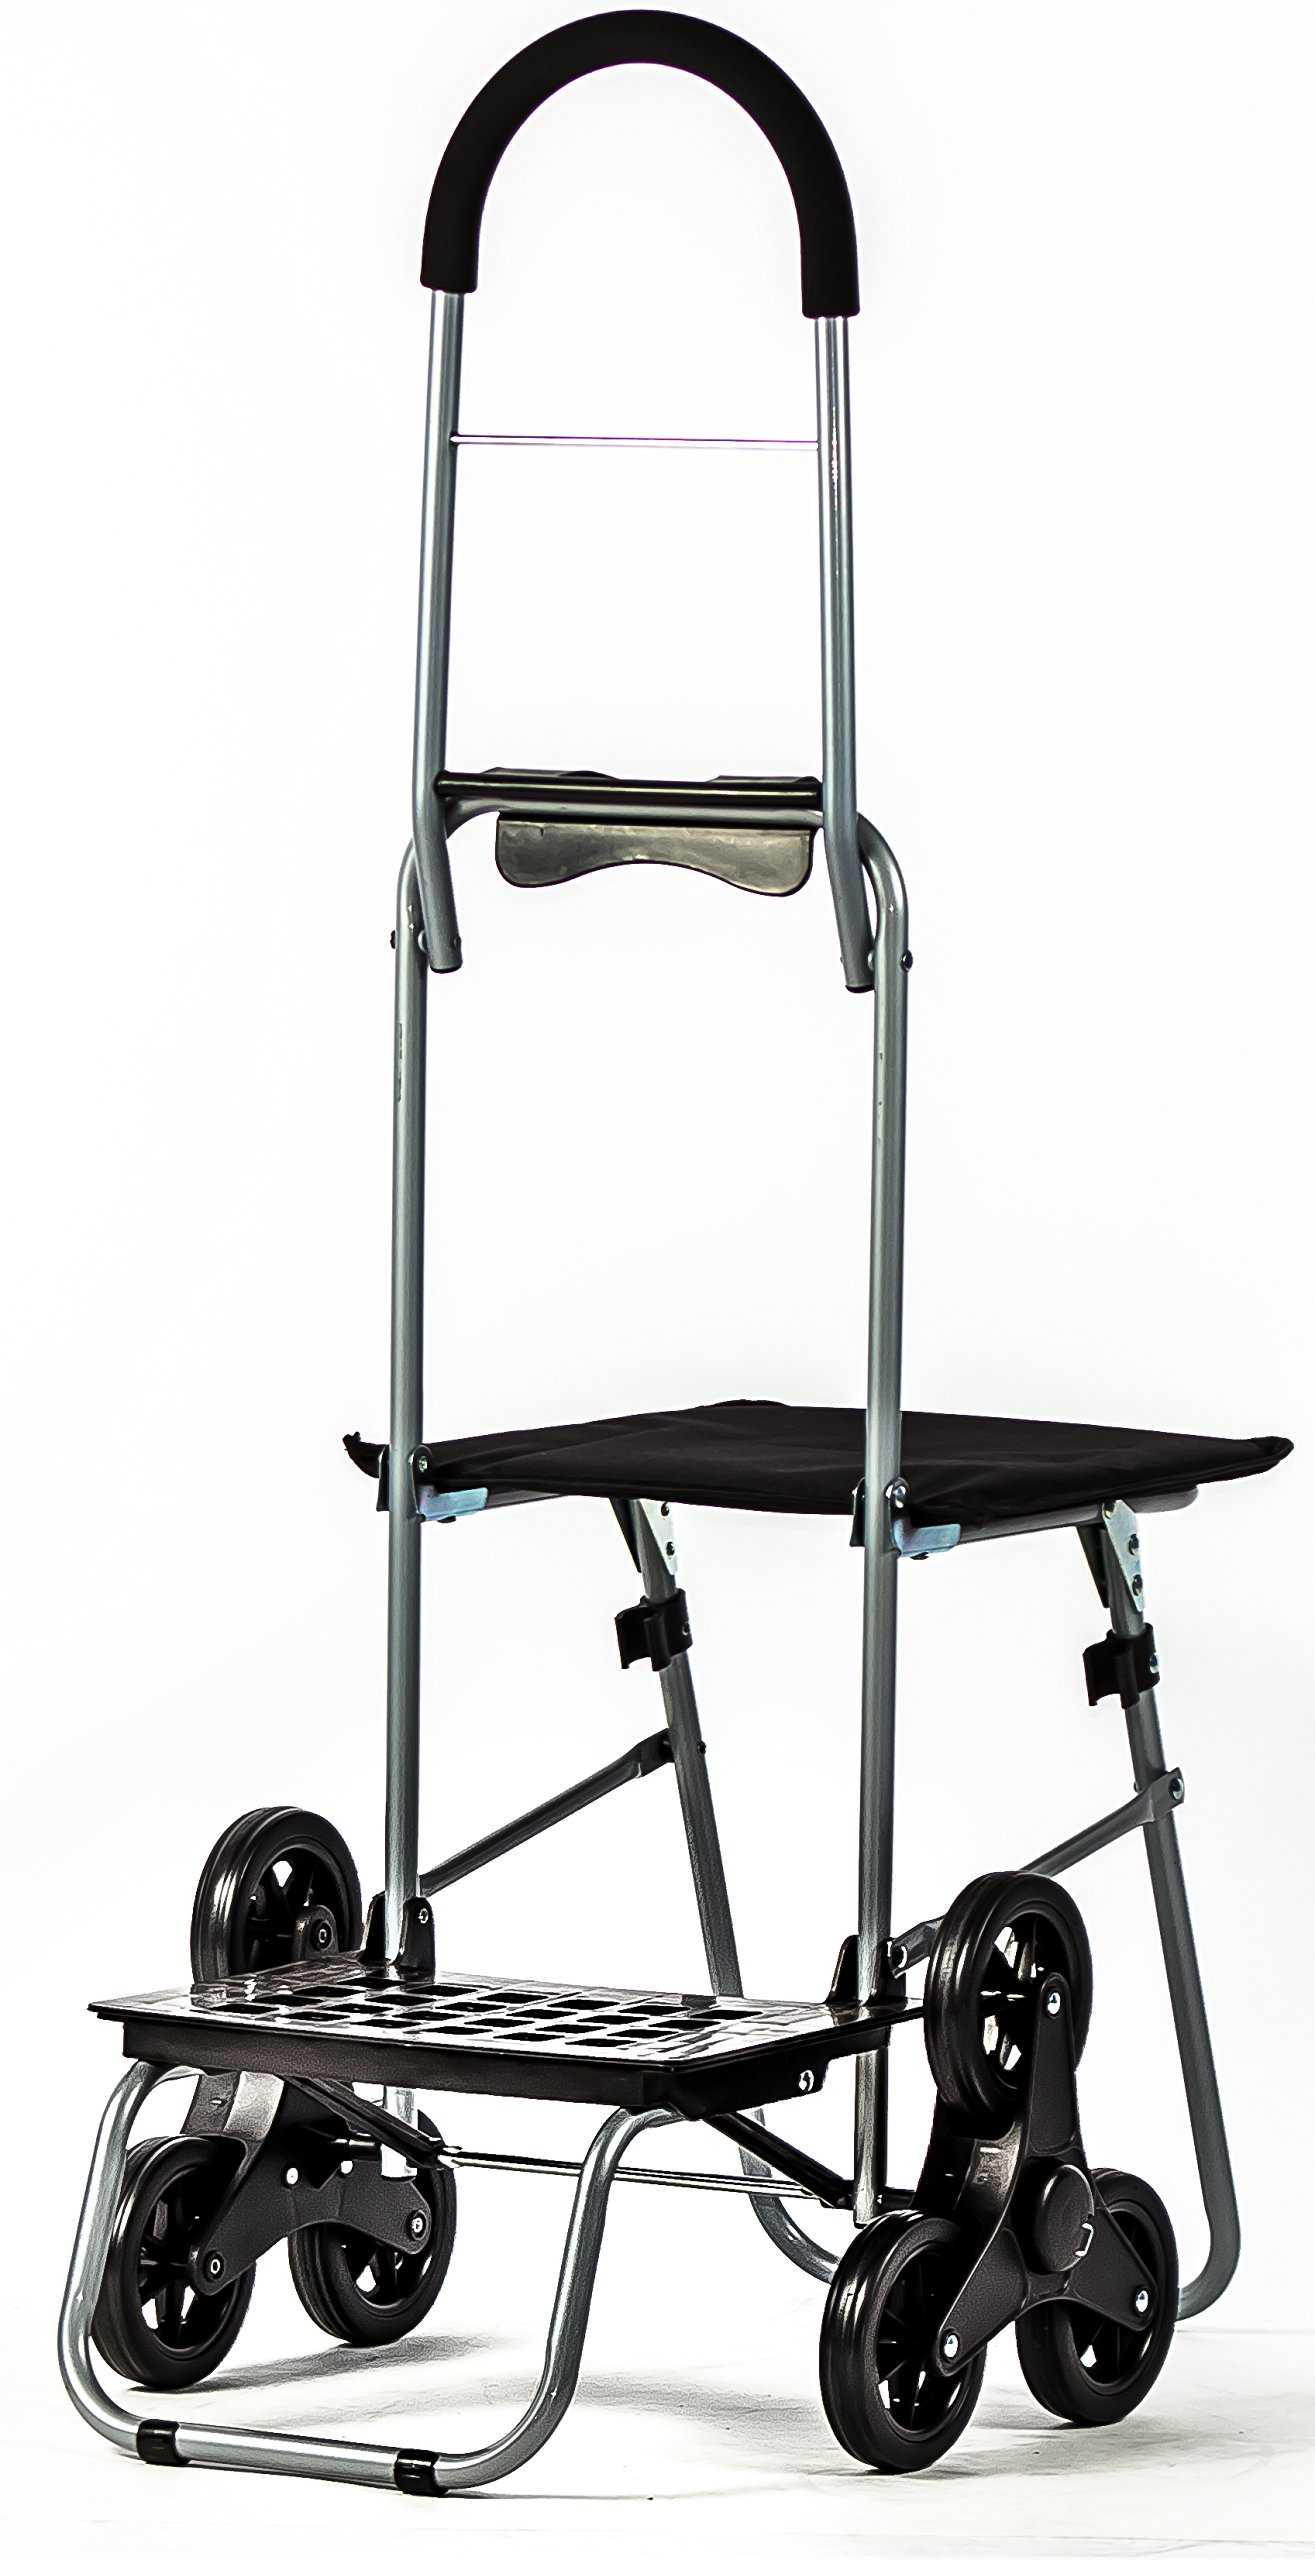 dbest products Stair Climber Mighty Max with Seat Personal Dolly, Black Handtruck Hardware Garden Utilty Cart